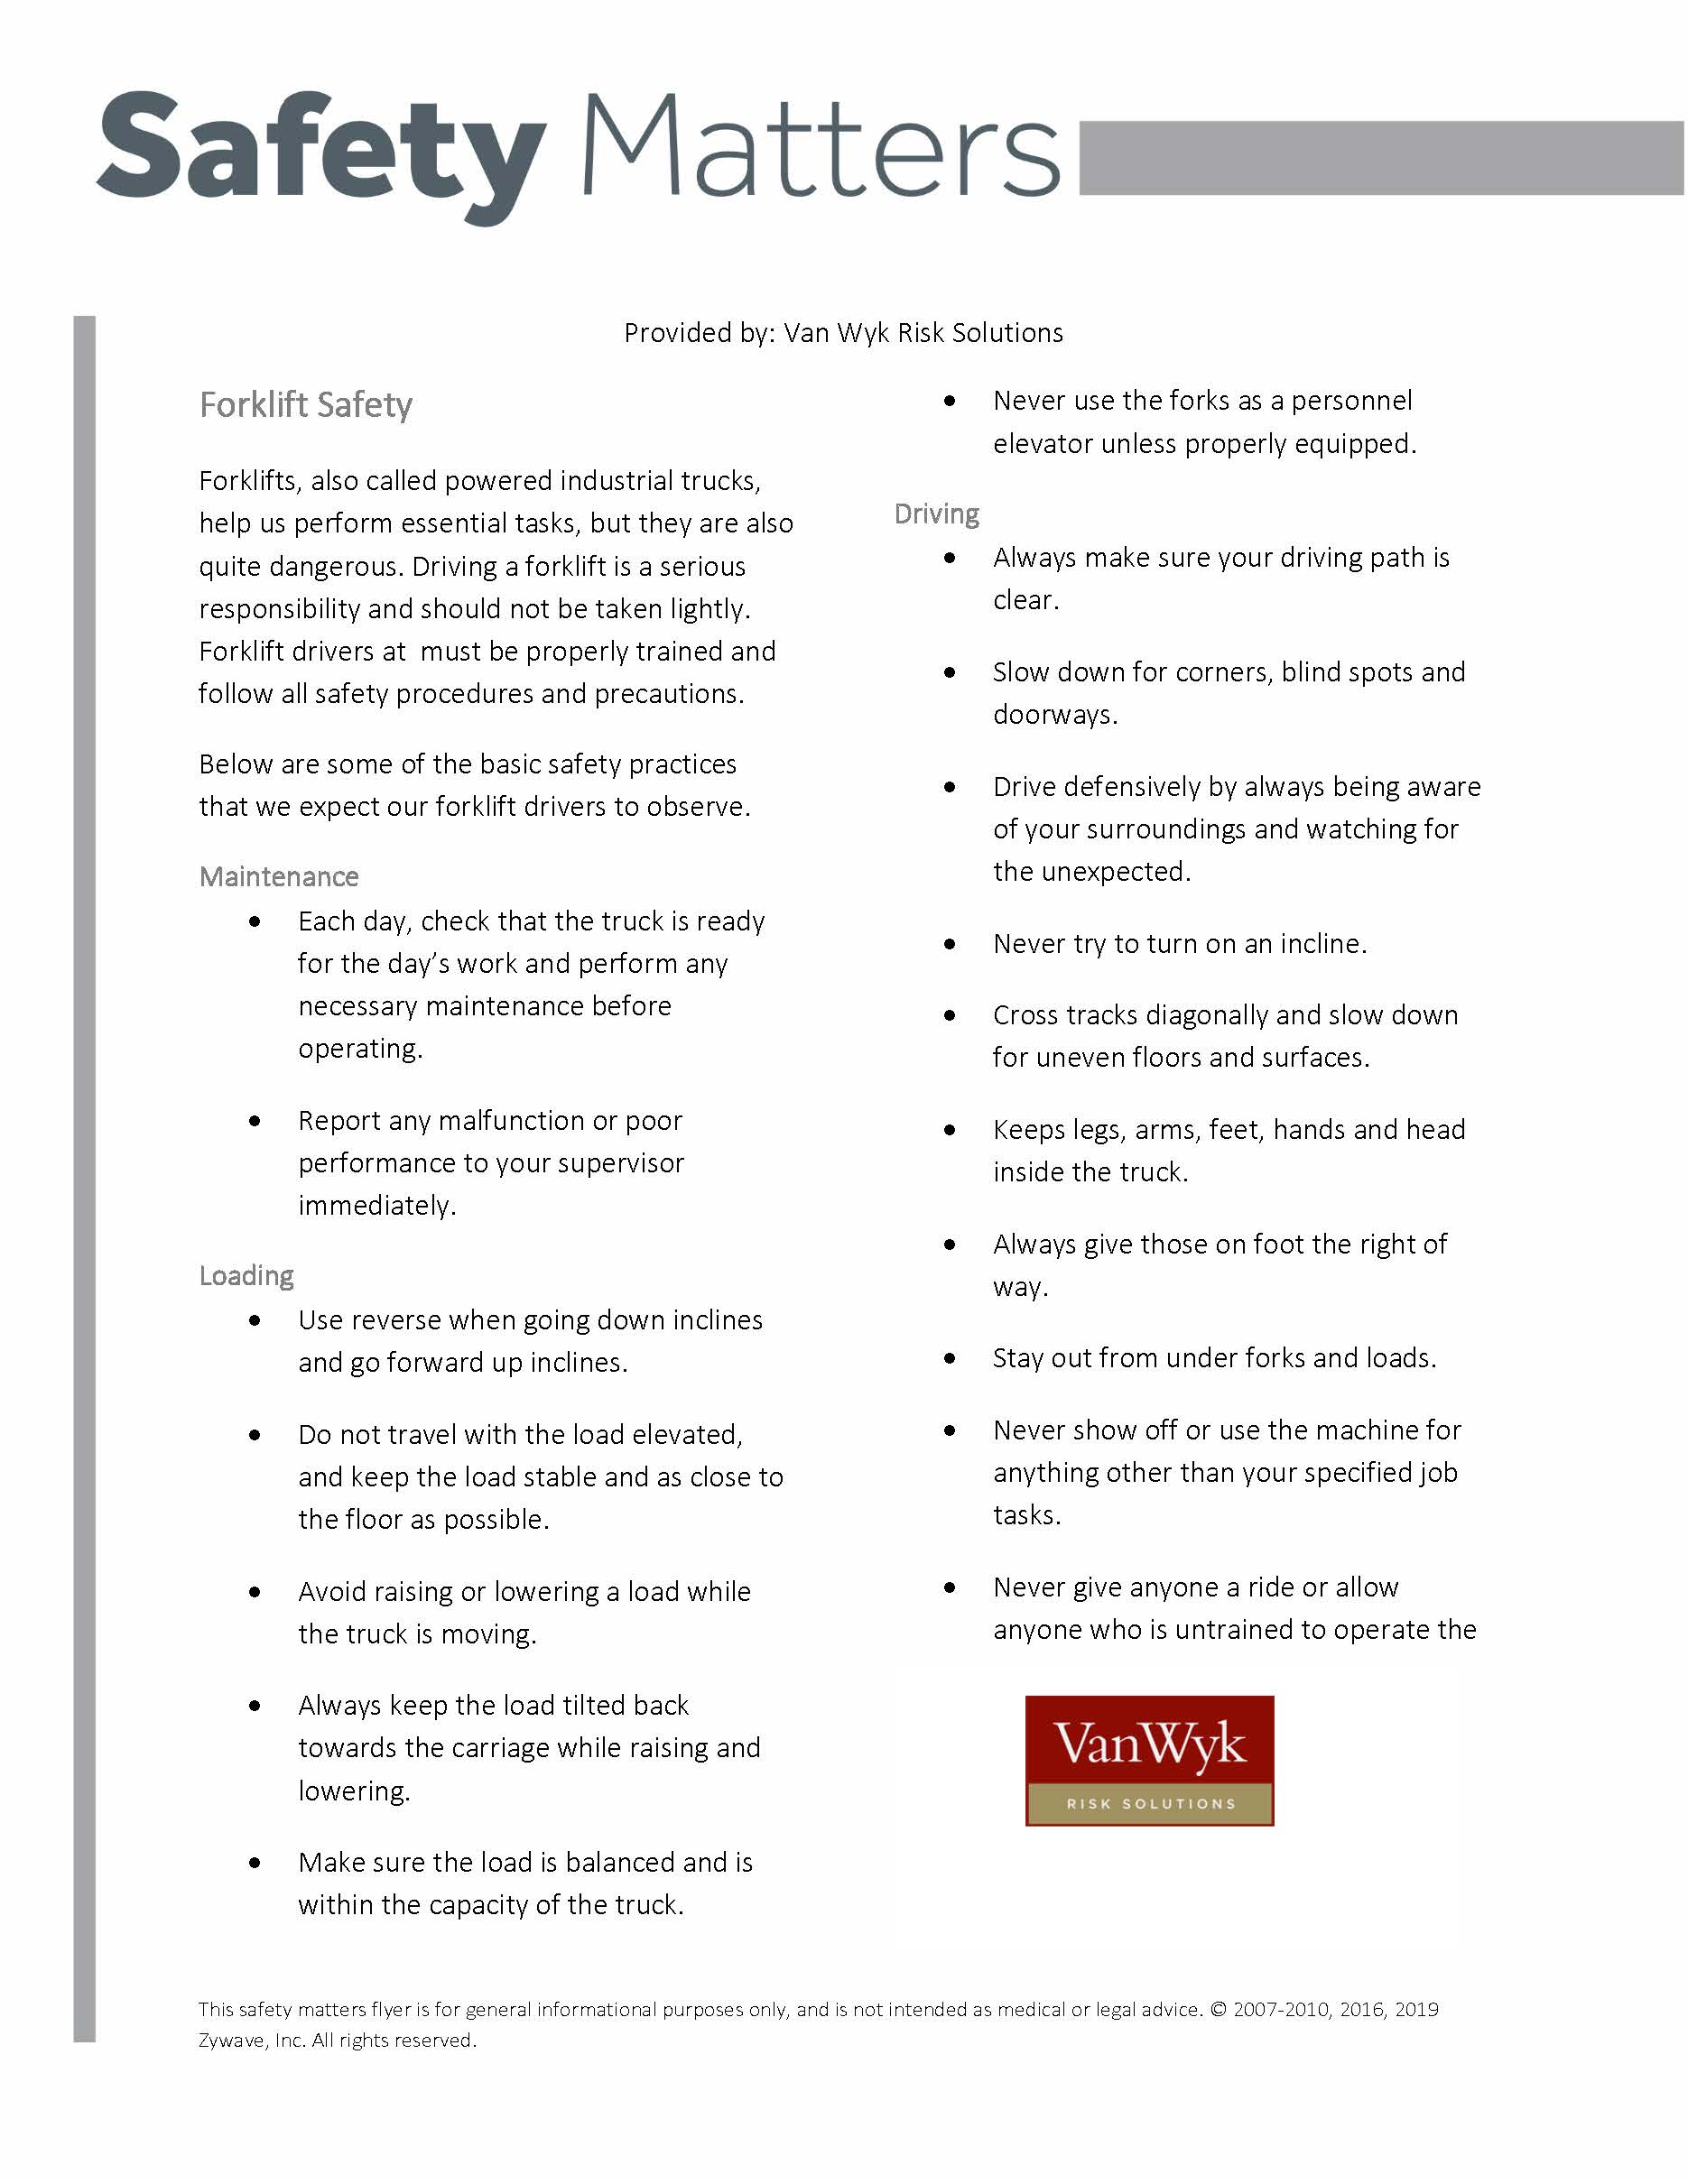 Safety Matters: Forklift Safety